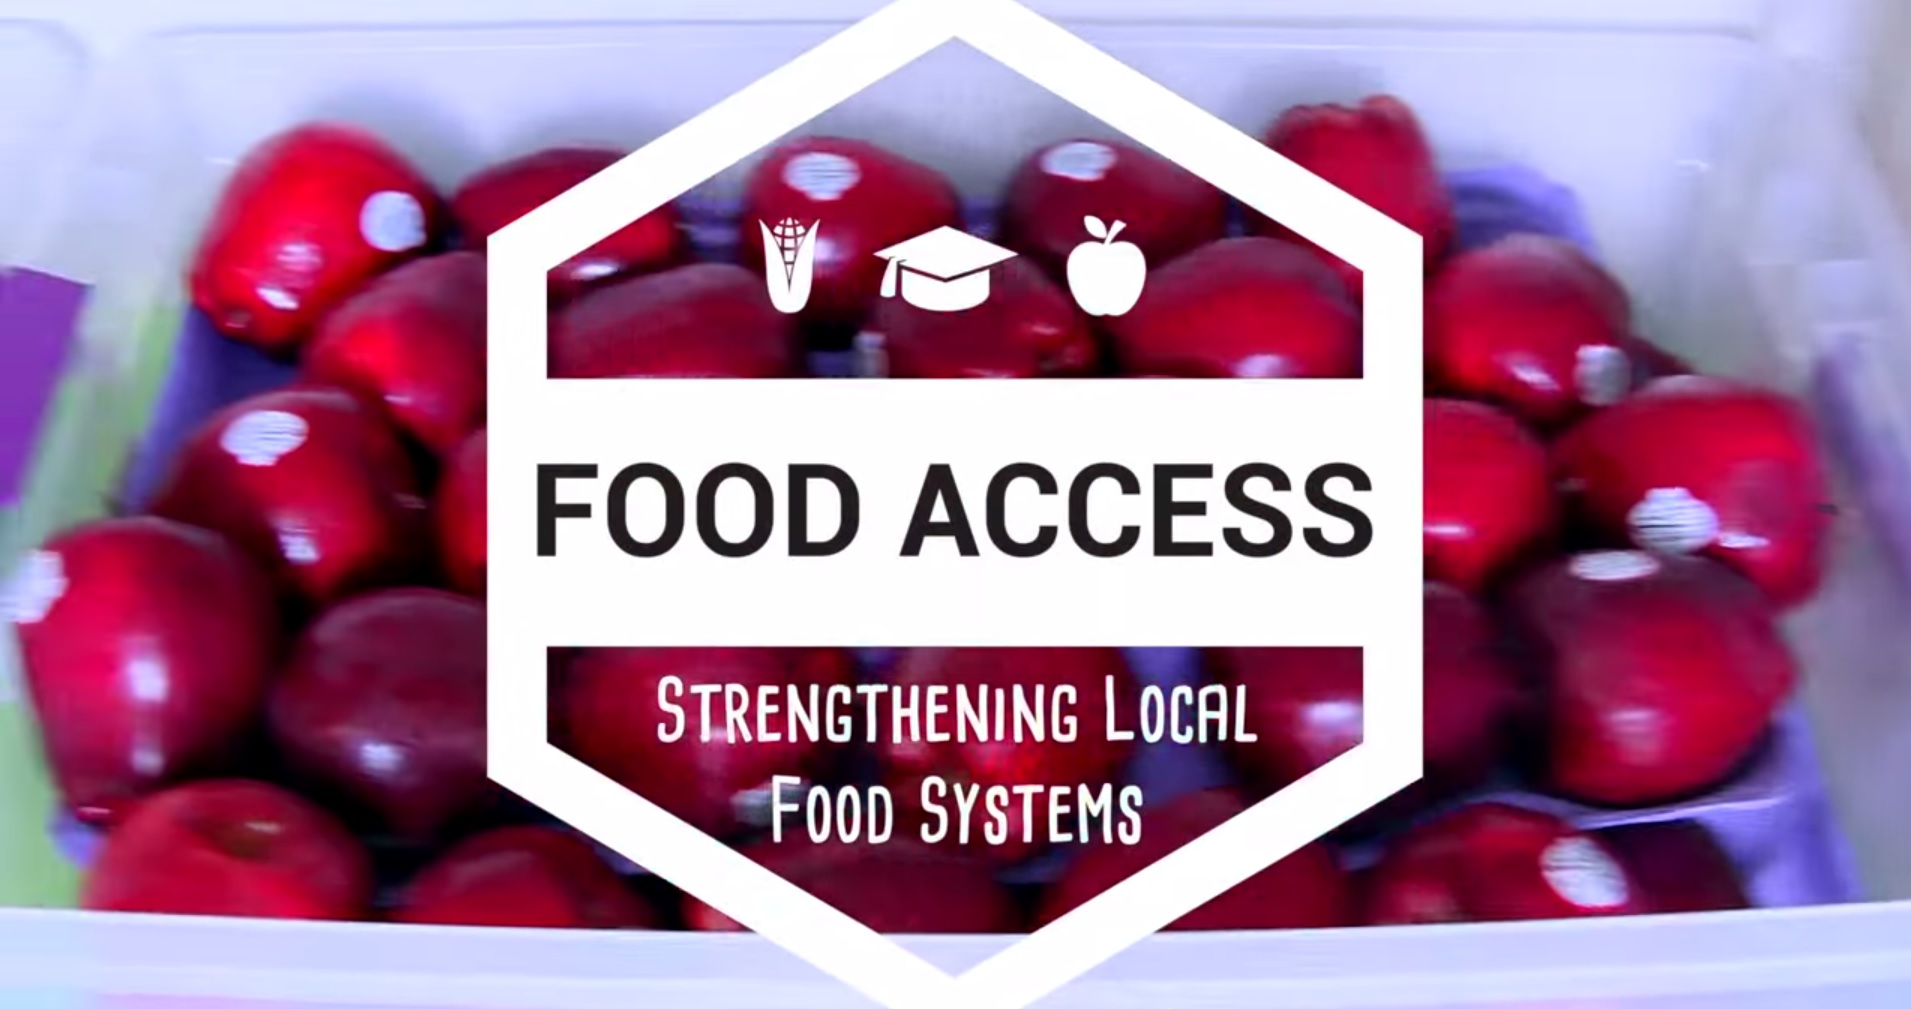 CDCs strengthen local food systems, which improve access to healthy foods and benefits the community, its economy, and the environment.